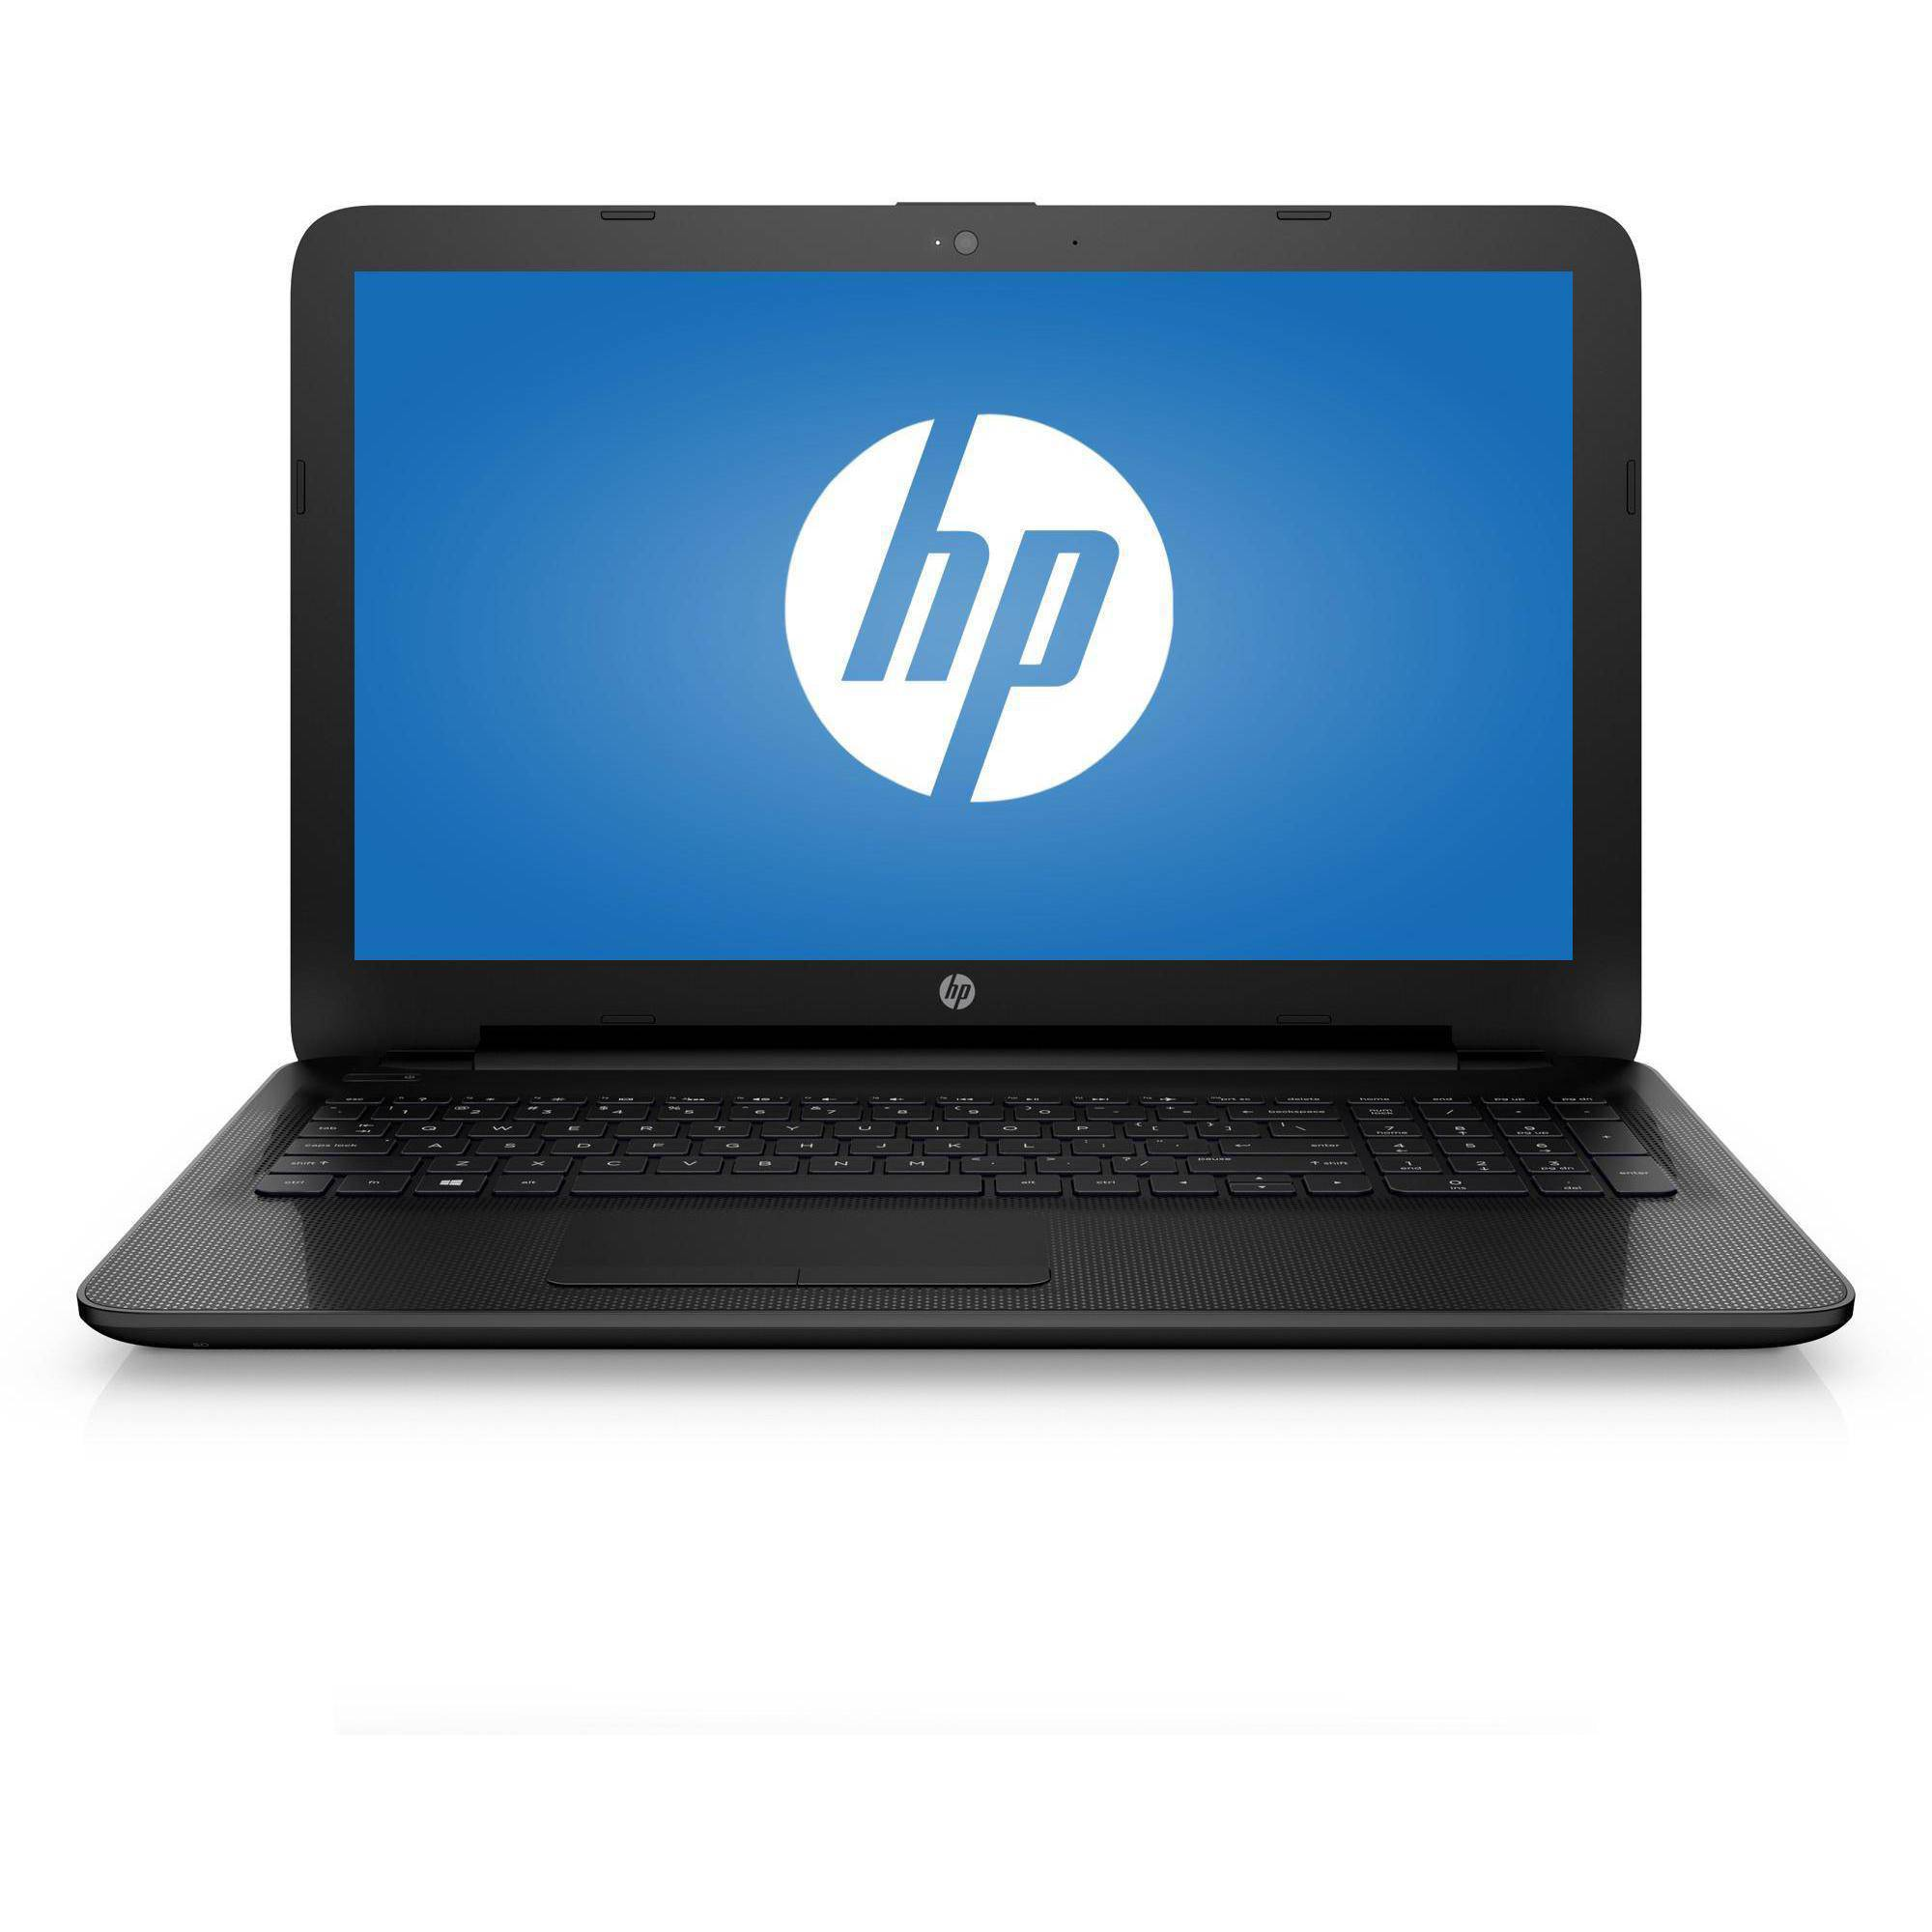 "HP Black 15.6"" 15-AC110NR Laptop PC with Intel Pentium 3825U Processor, 4GB Memory, 500GB Hard Drive and Windows 10 Home"